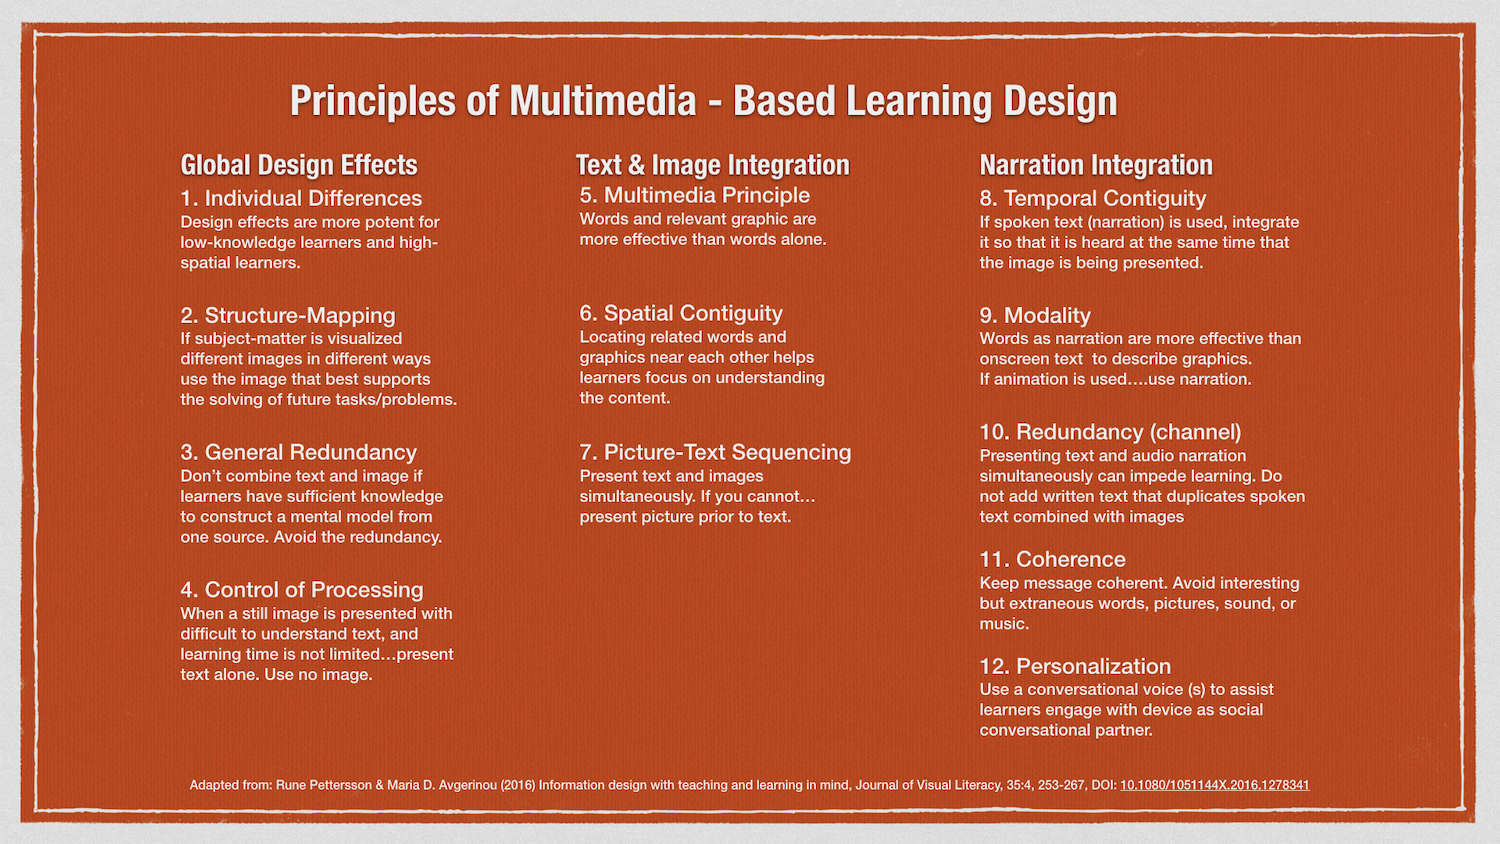 Narrated Lecture Design Five Guiding Multimedia Principles Ecampus Course Development And Training